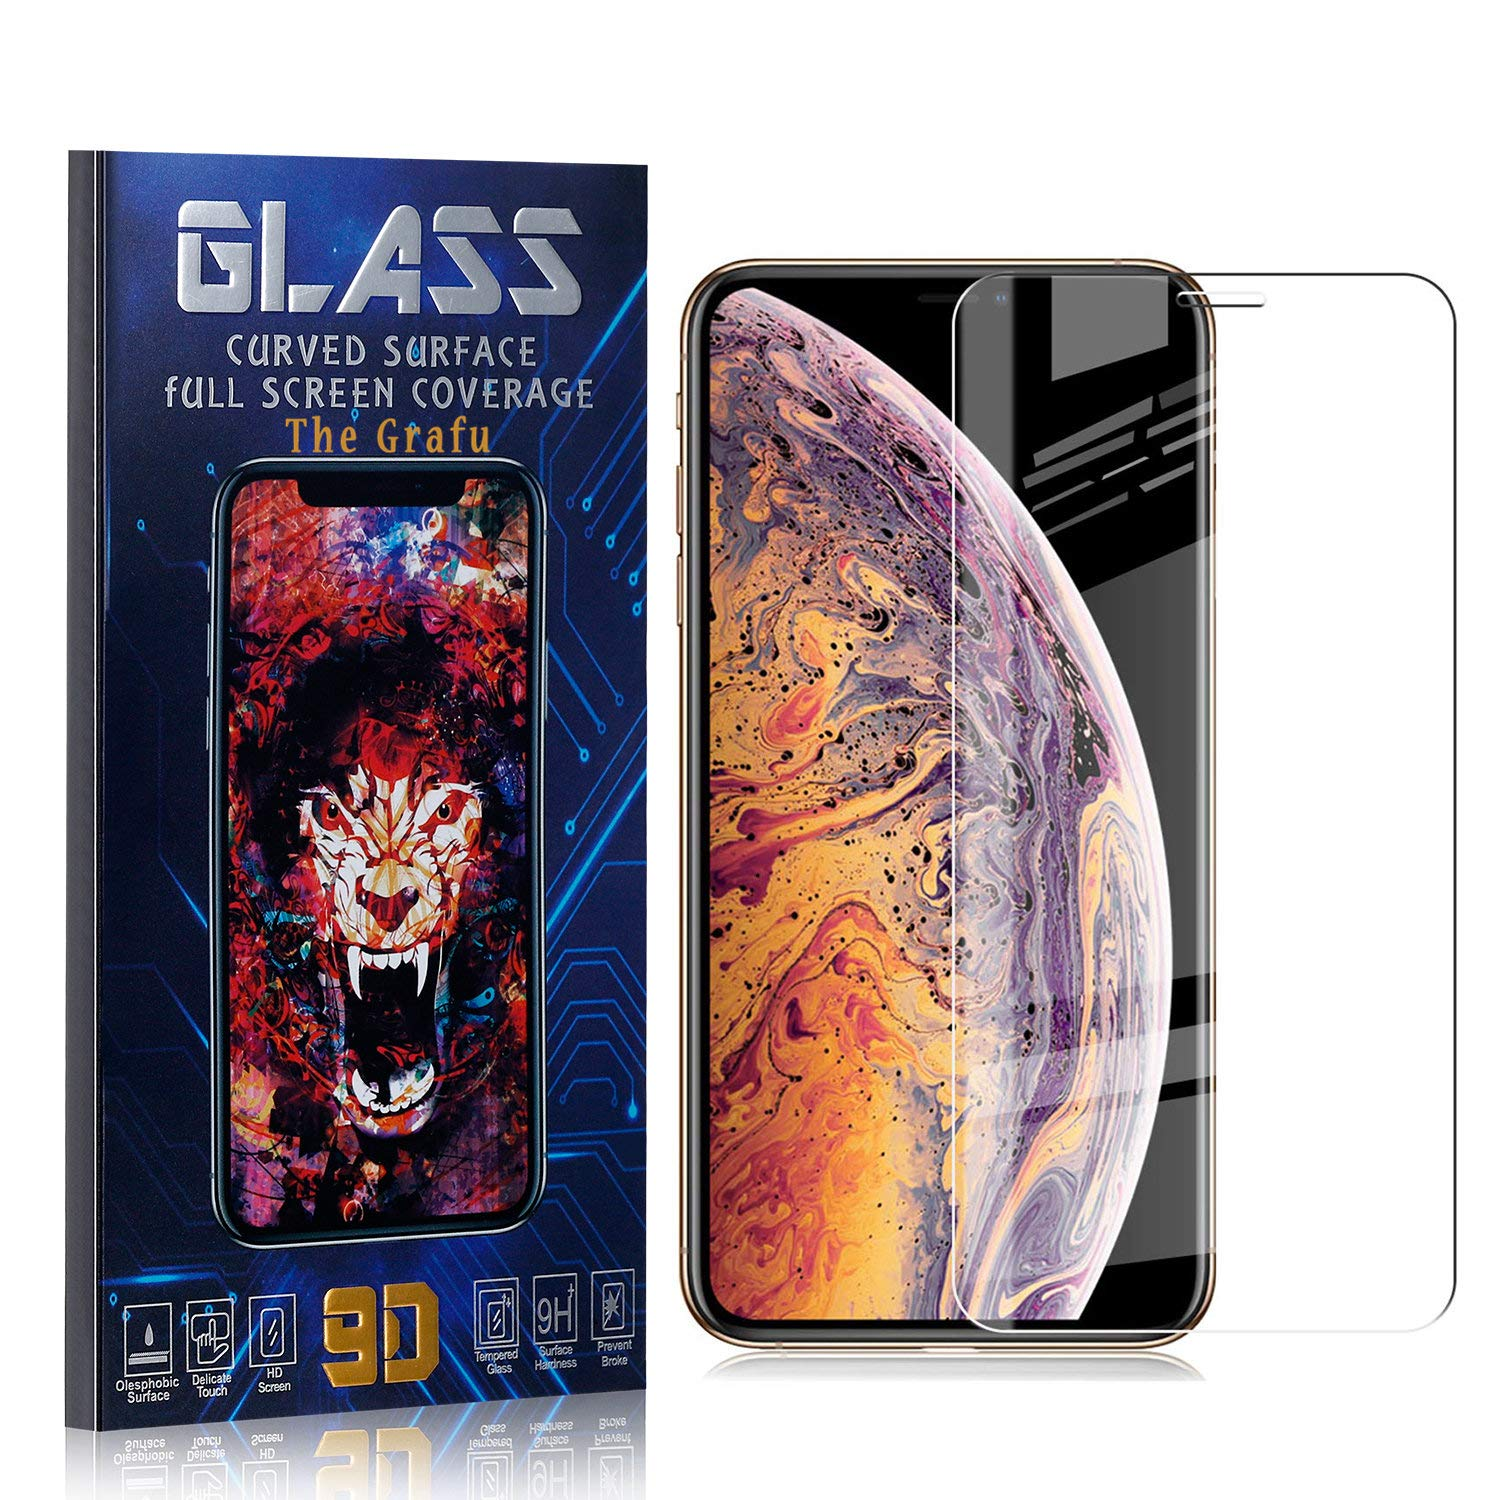 High Transparency Screen Protector for iPhone Xs Max 1 Pack Easy Installation The Grafu Screen Protector for iPhone Xs Max Tempered Glass Bubble Free